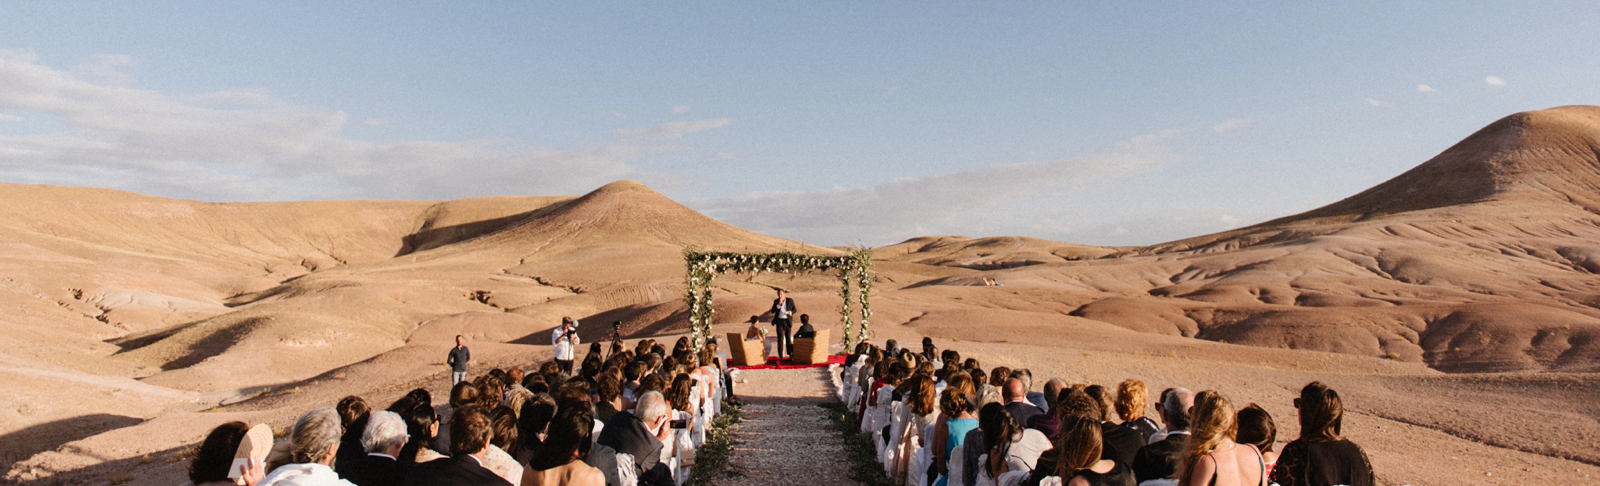 feature-chloe-lapeyssonnie-cool-modern-hipster-wedding-desert-morocco-marrakech-lapause_0011.jpg